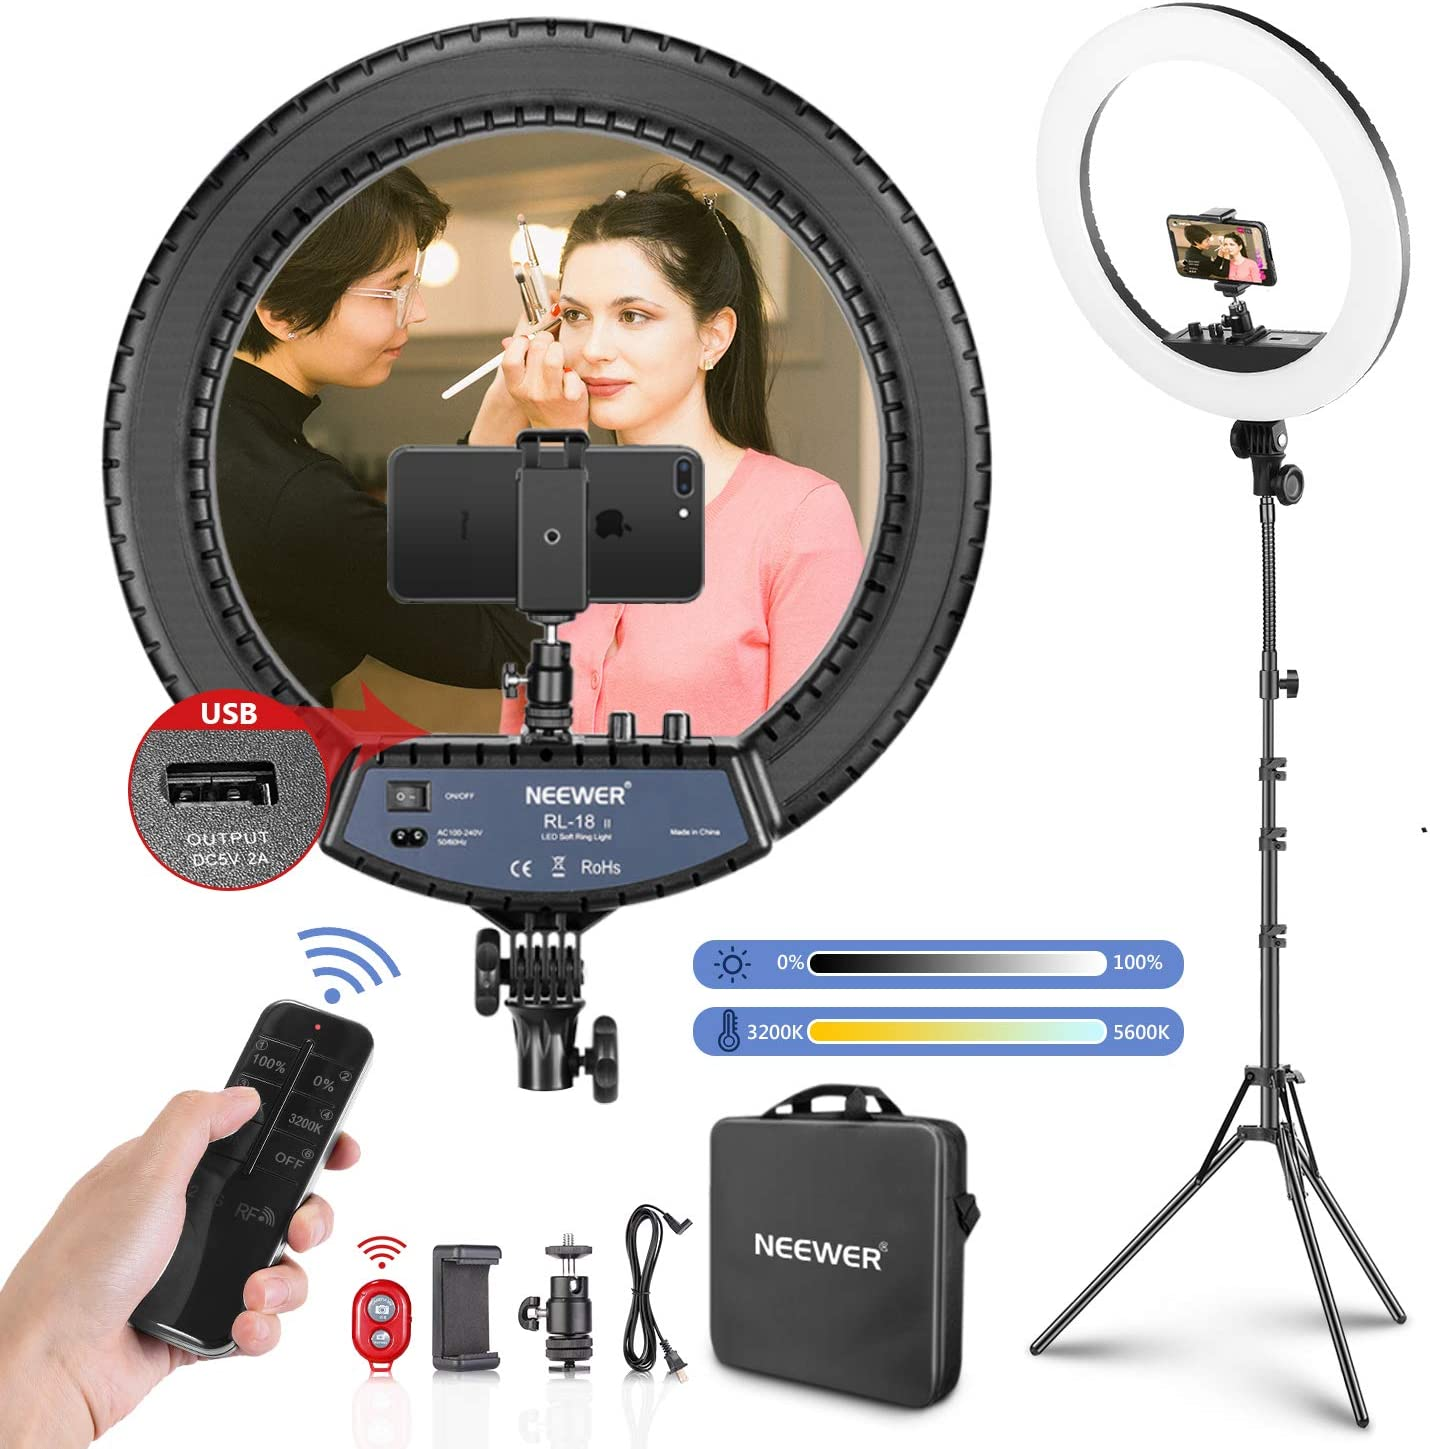 Neewer 18-inch LED Ring Light with Stand